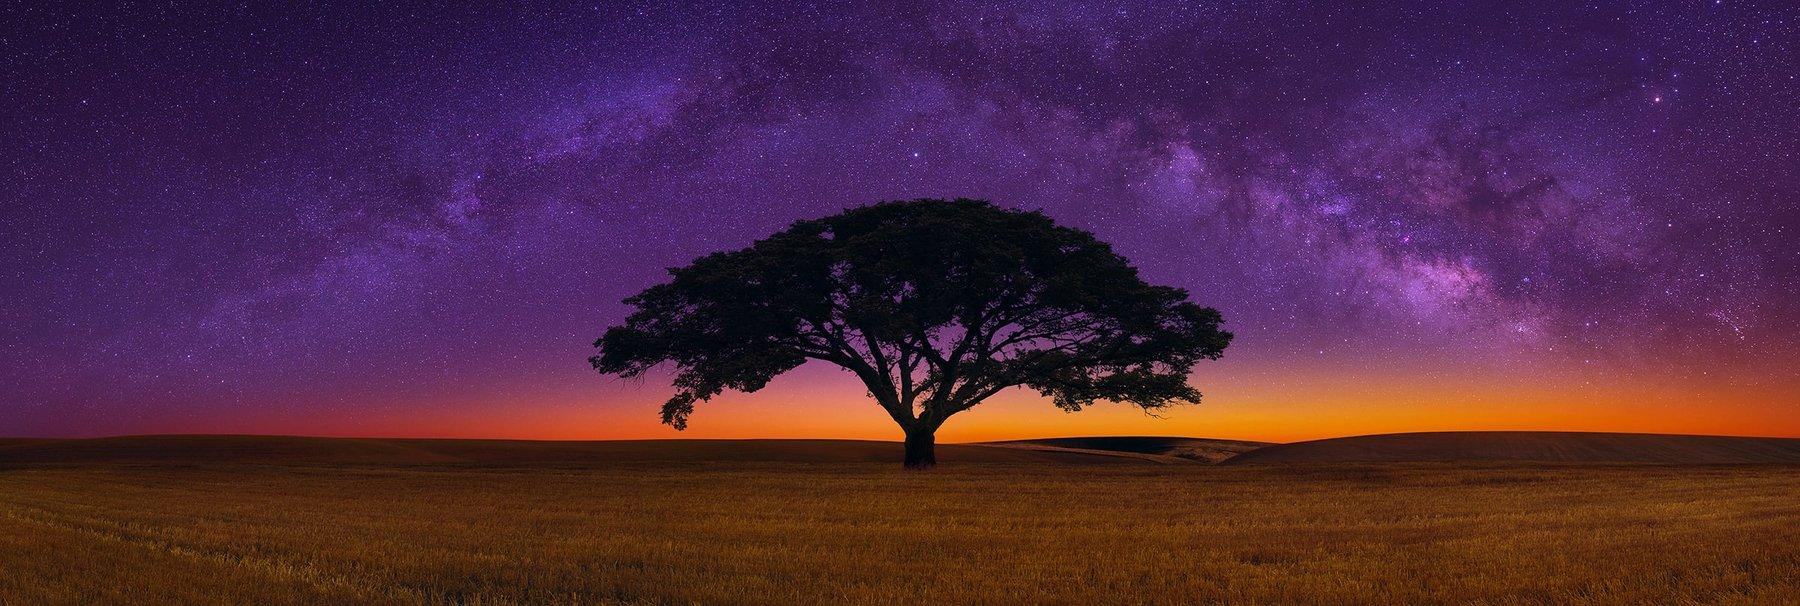 Peter Lik - Celestial Dreams